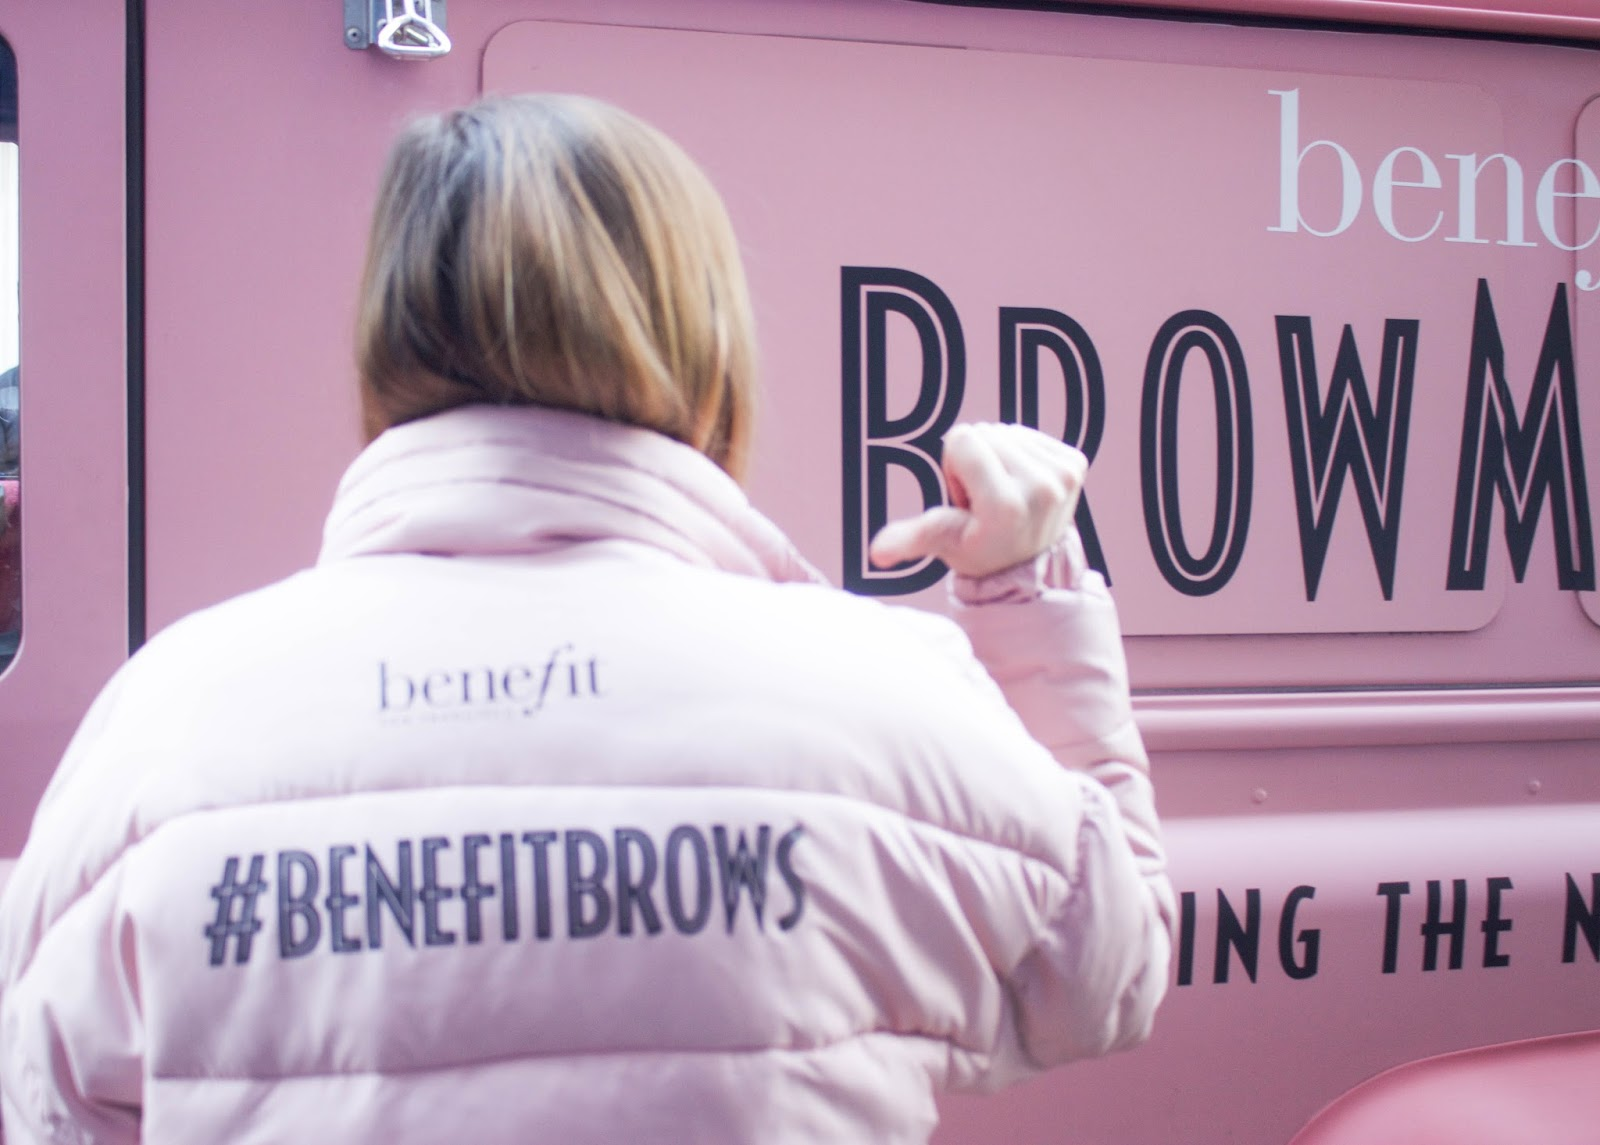 Benefit Cosmetics Brow Event